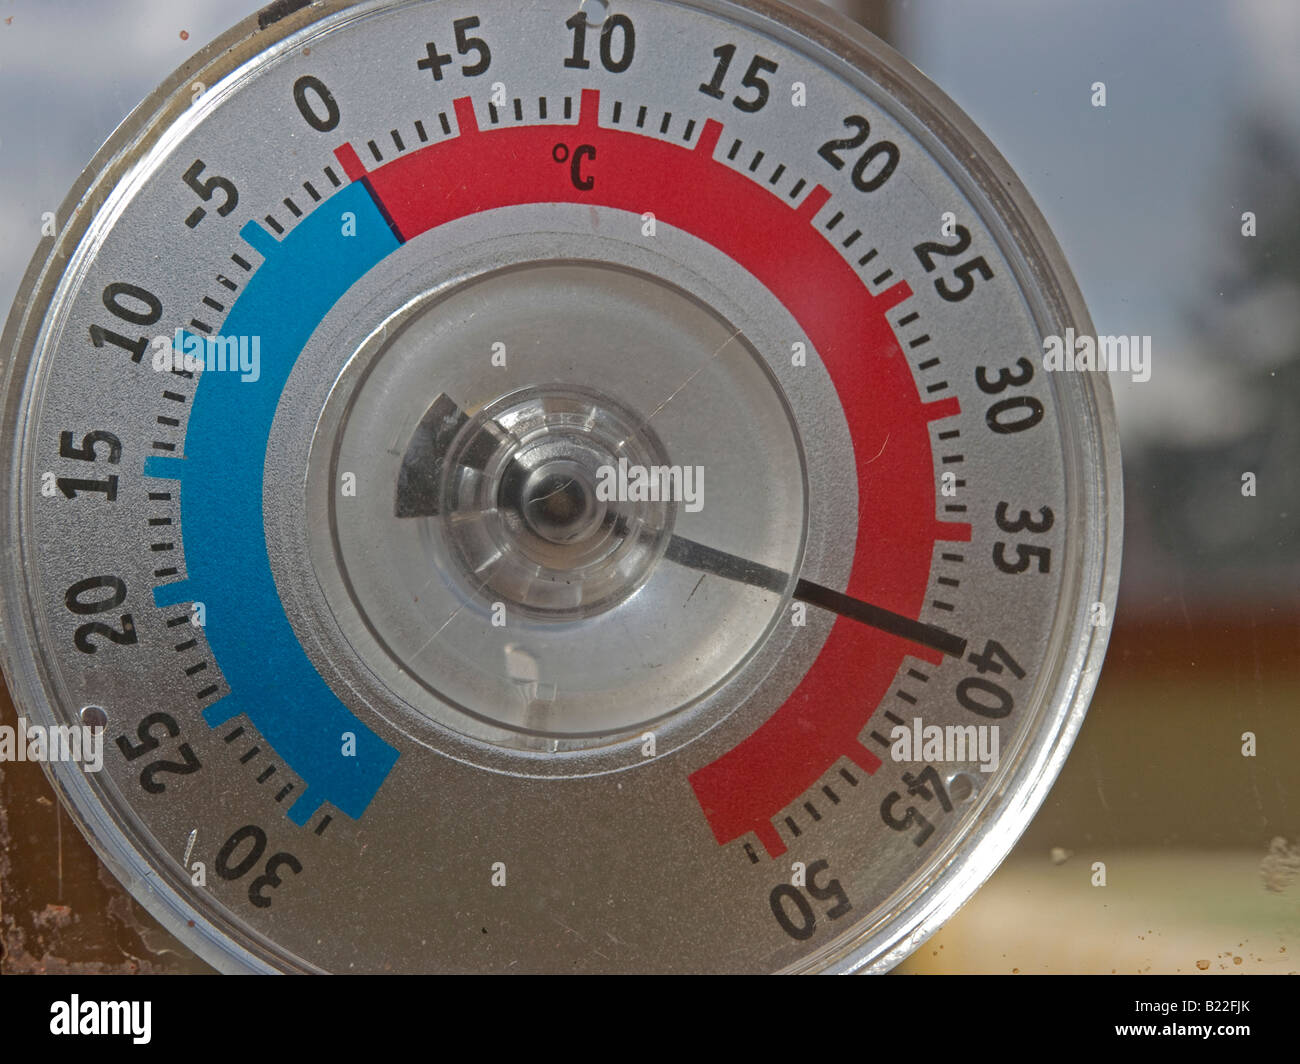 thermometer showing high temperature very hot summer climate change dangerous heat - Stock Image